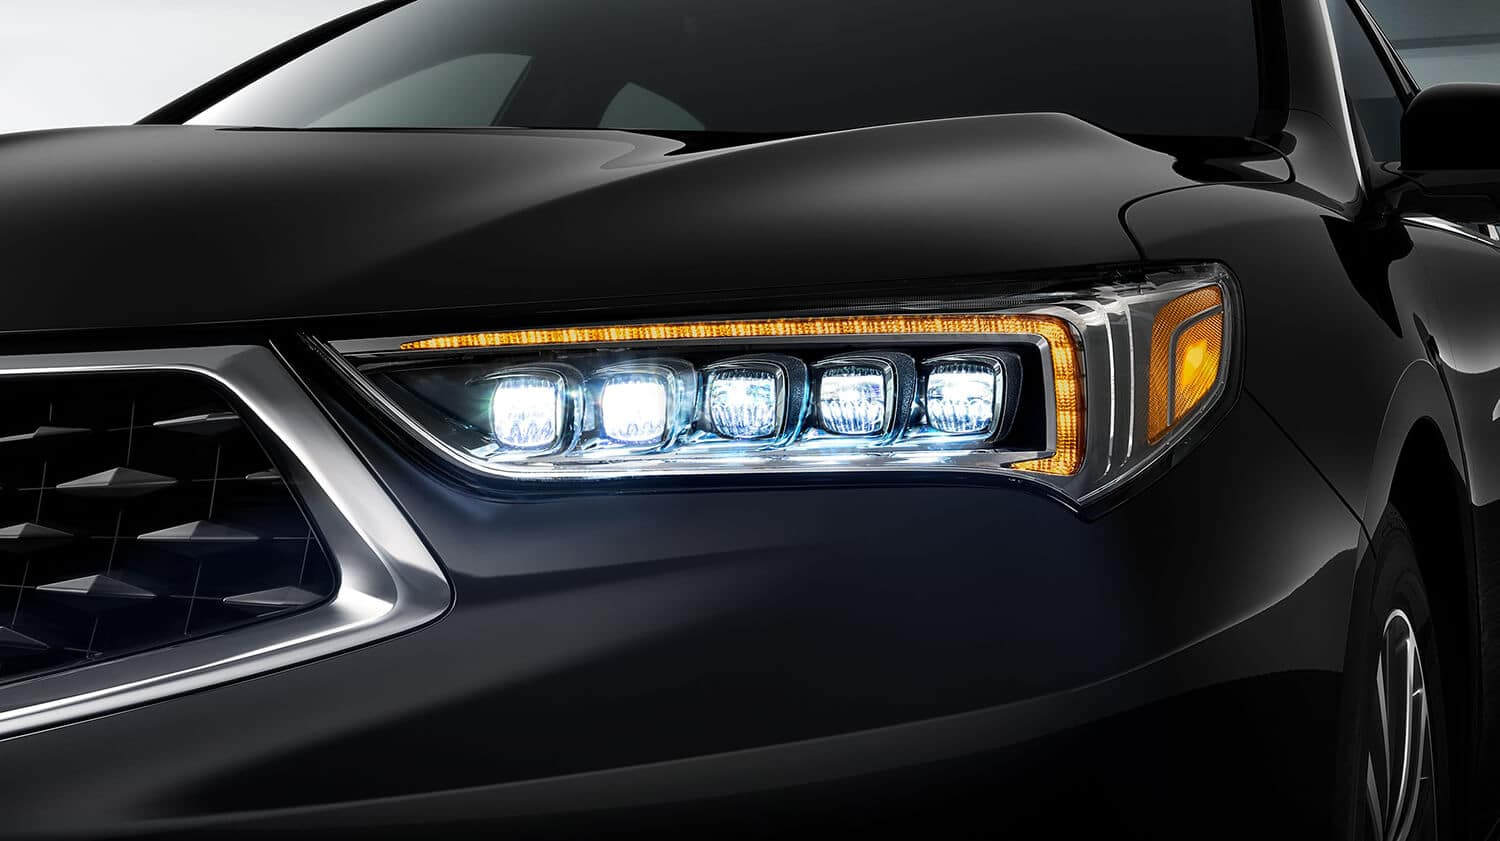 2019 Acura TLX Exterior Jewel Eye LED Headlights